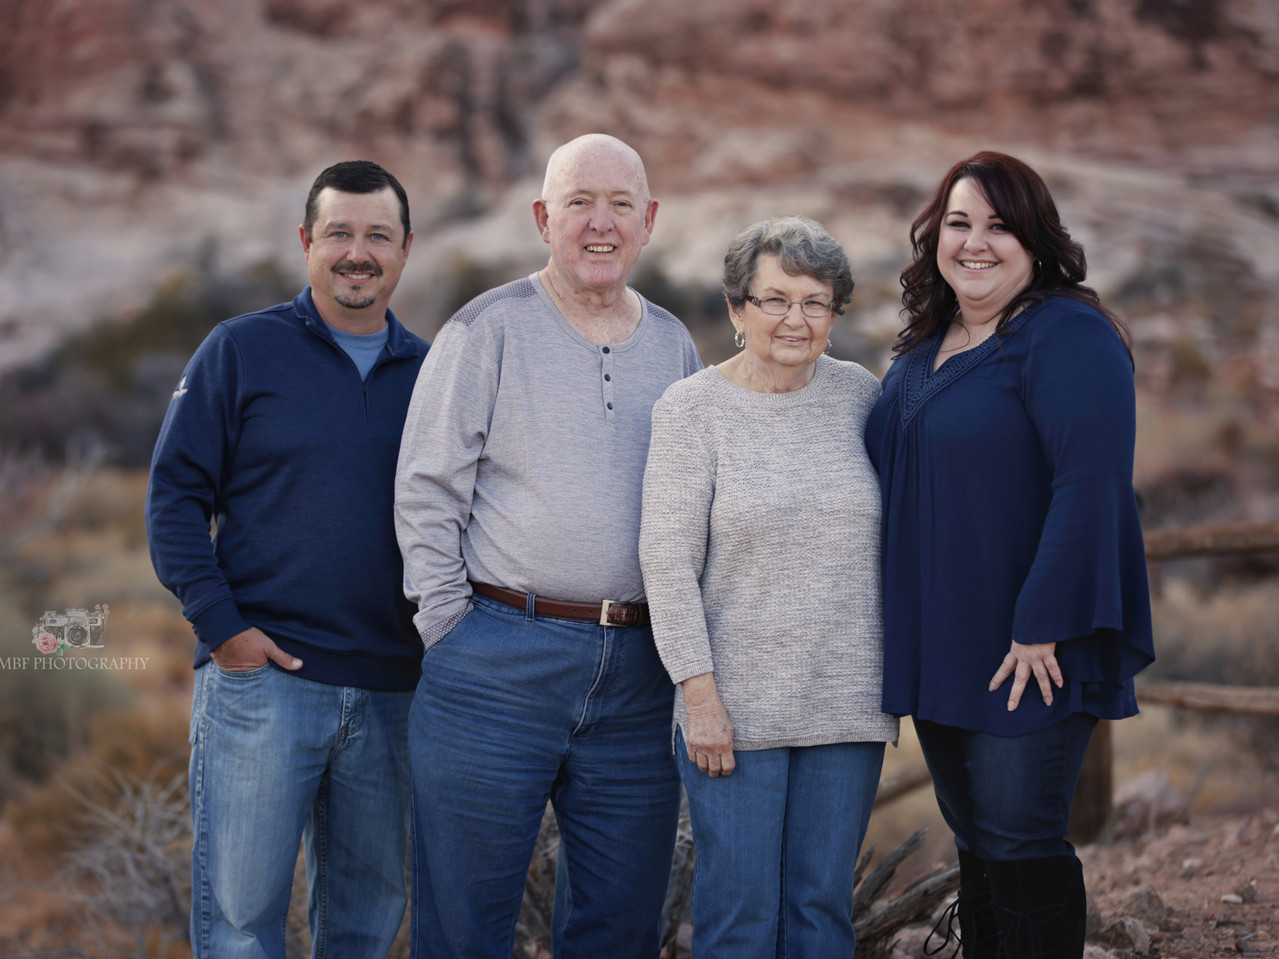 Family photographer Las Vegas